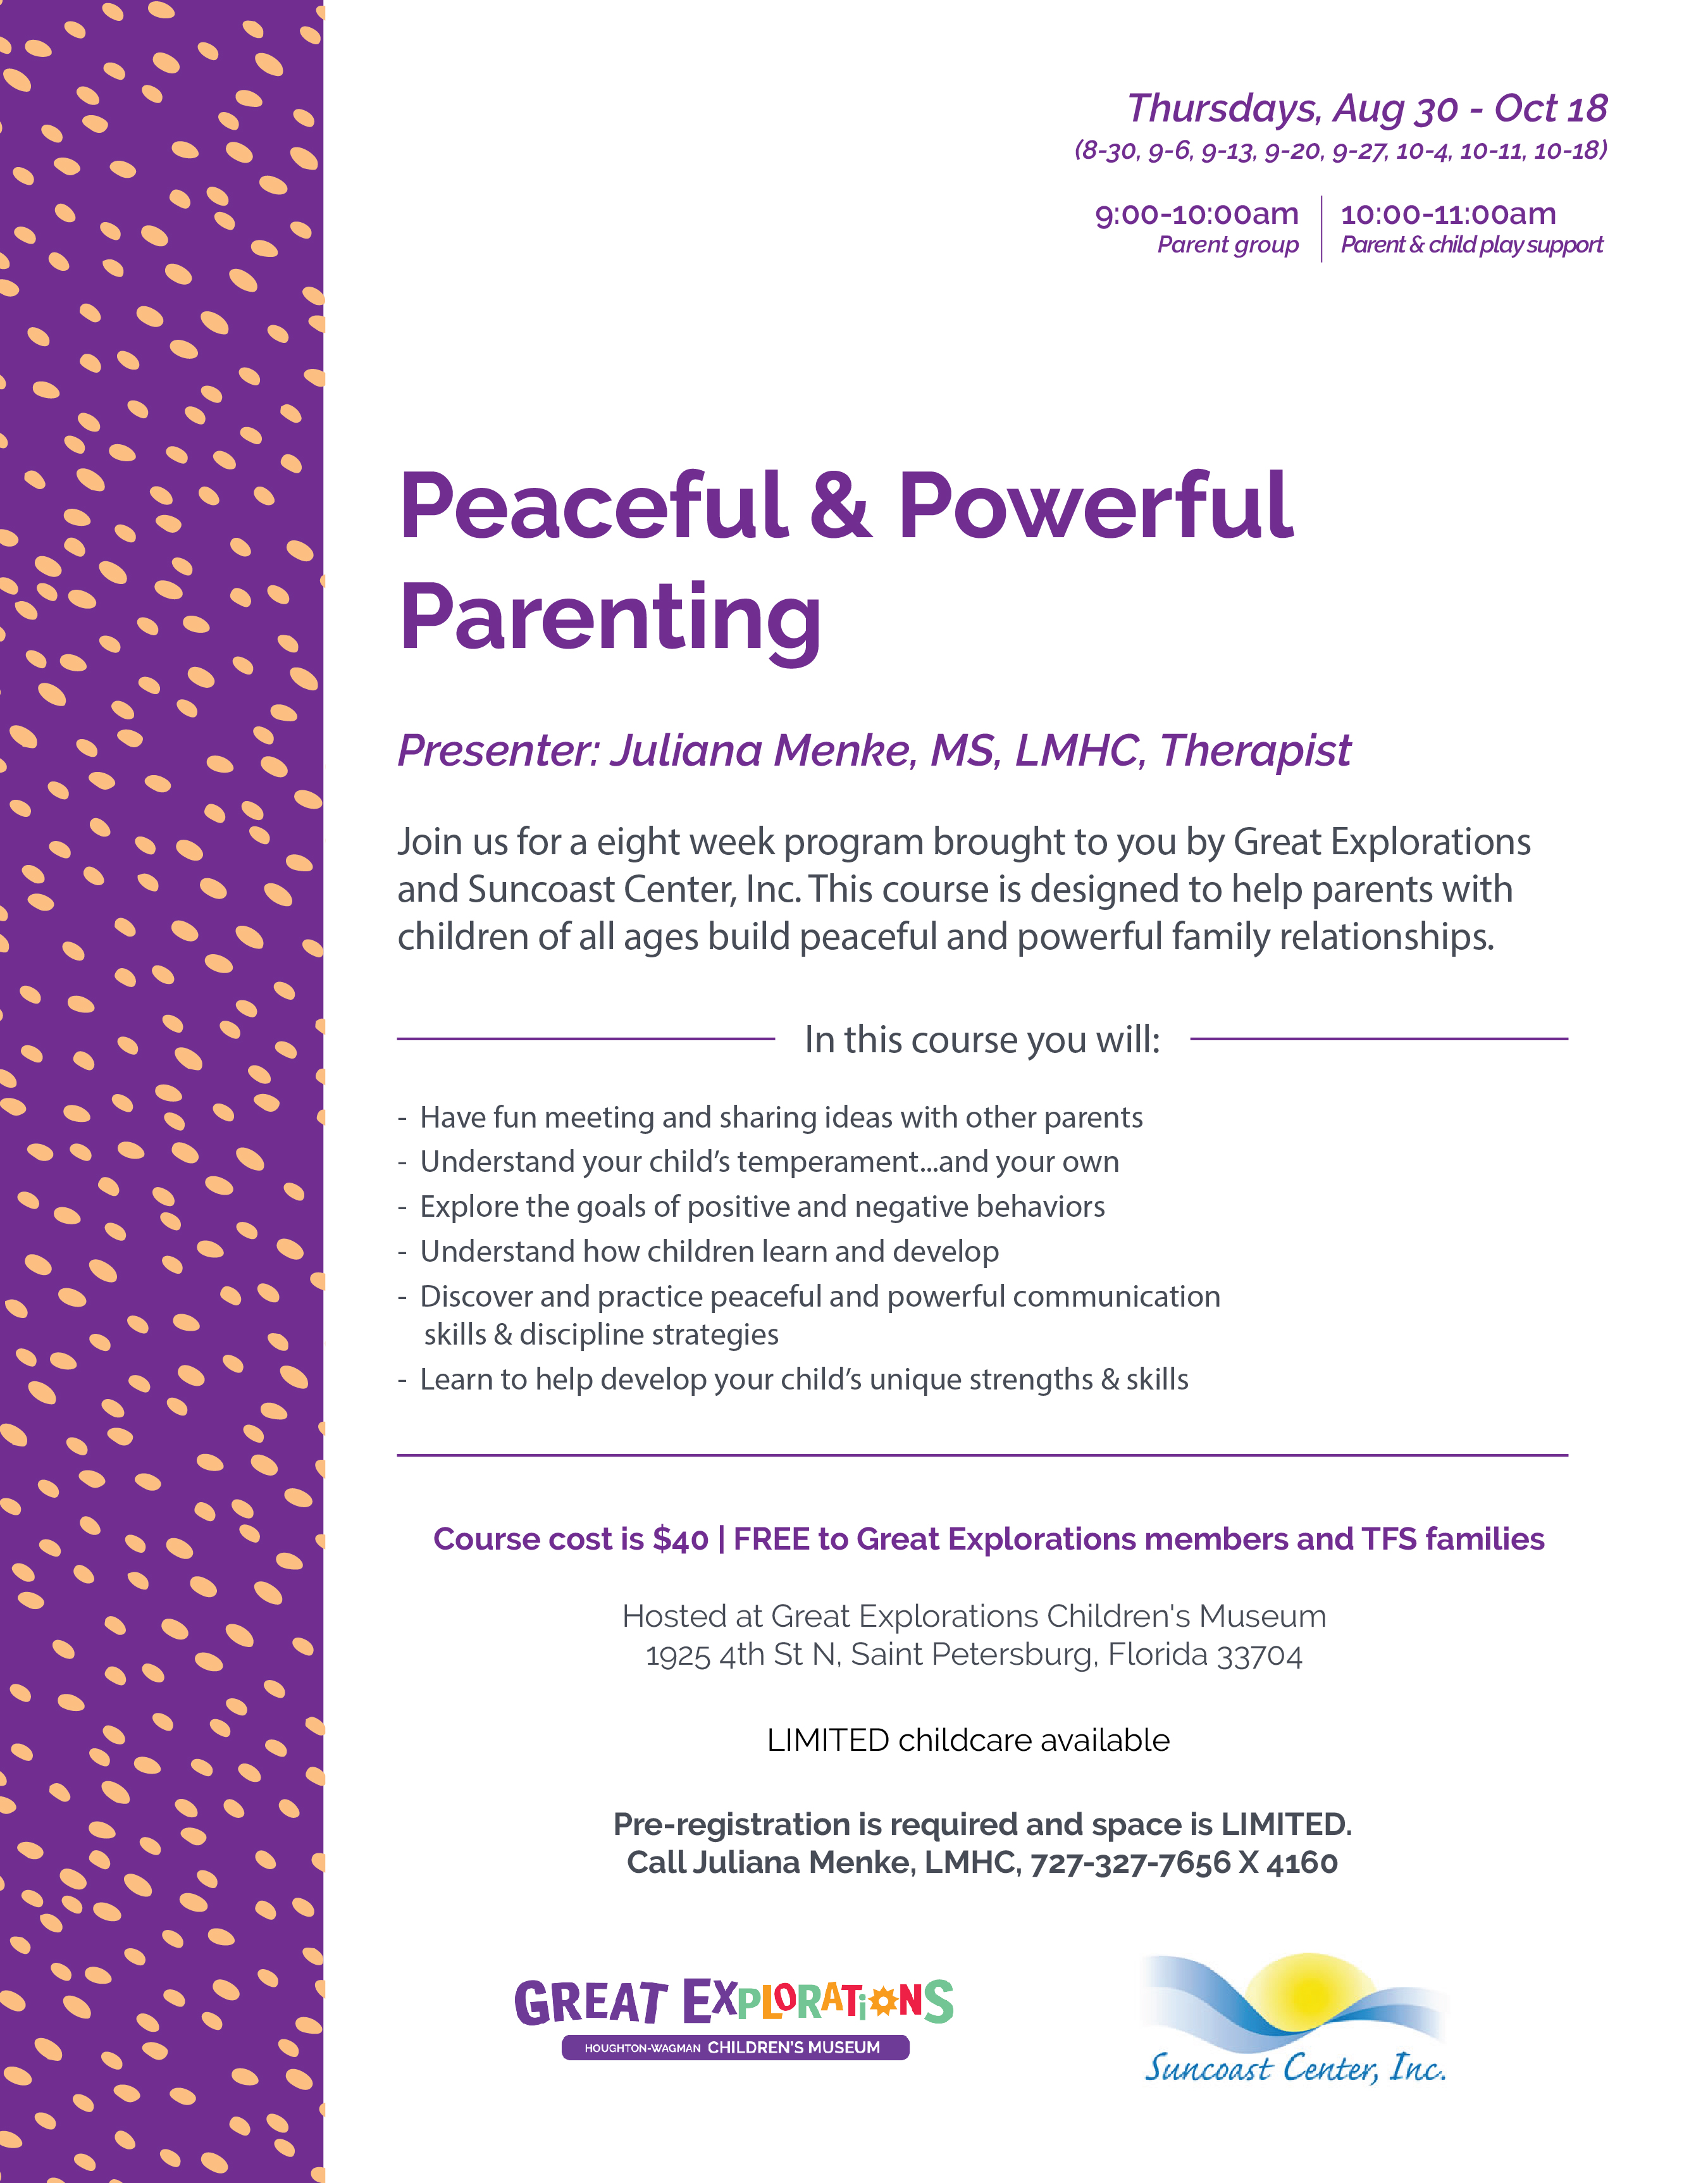 Peaceful & Powerful Parenting - Great Explorations